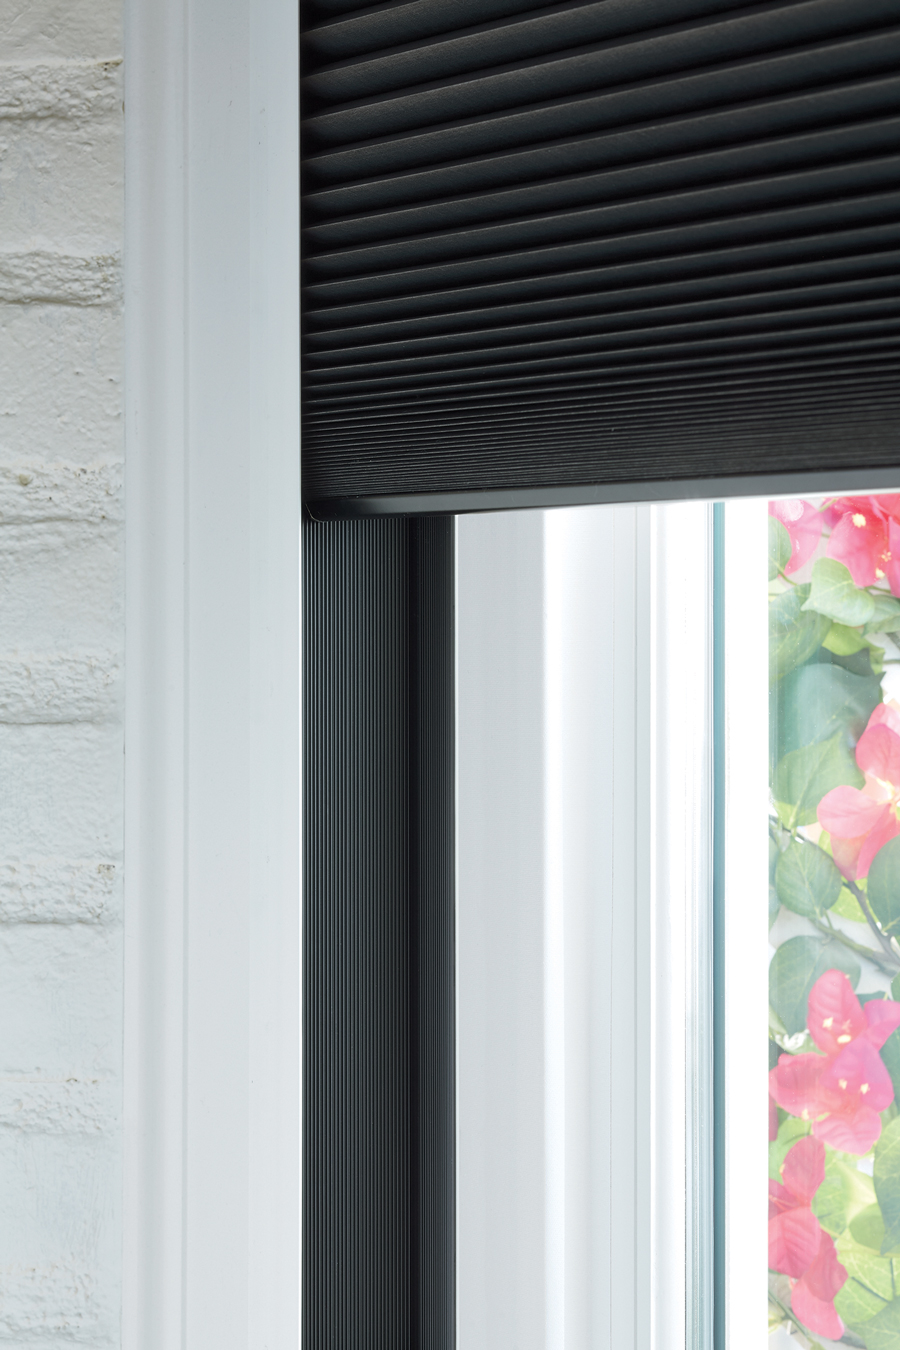 LightLock blackout shades in Minneapolis home.